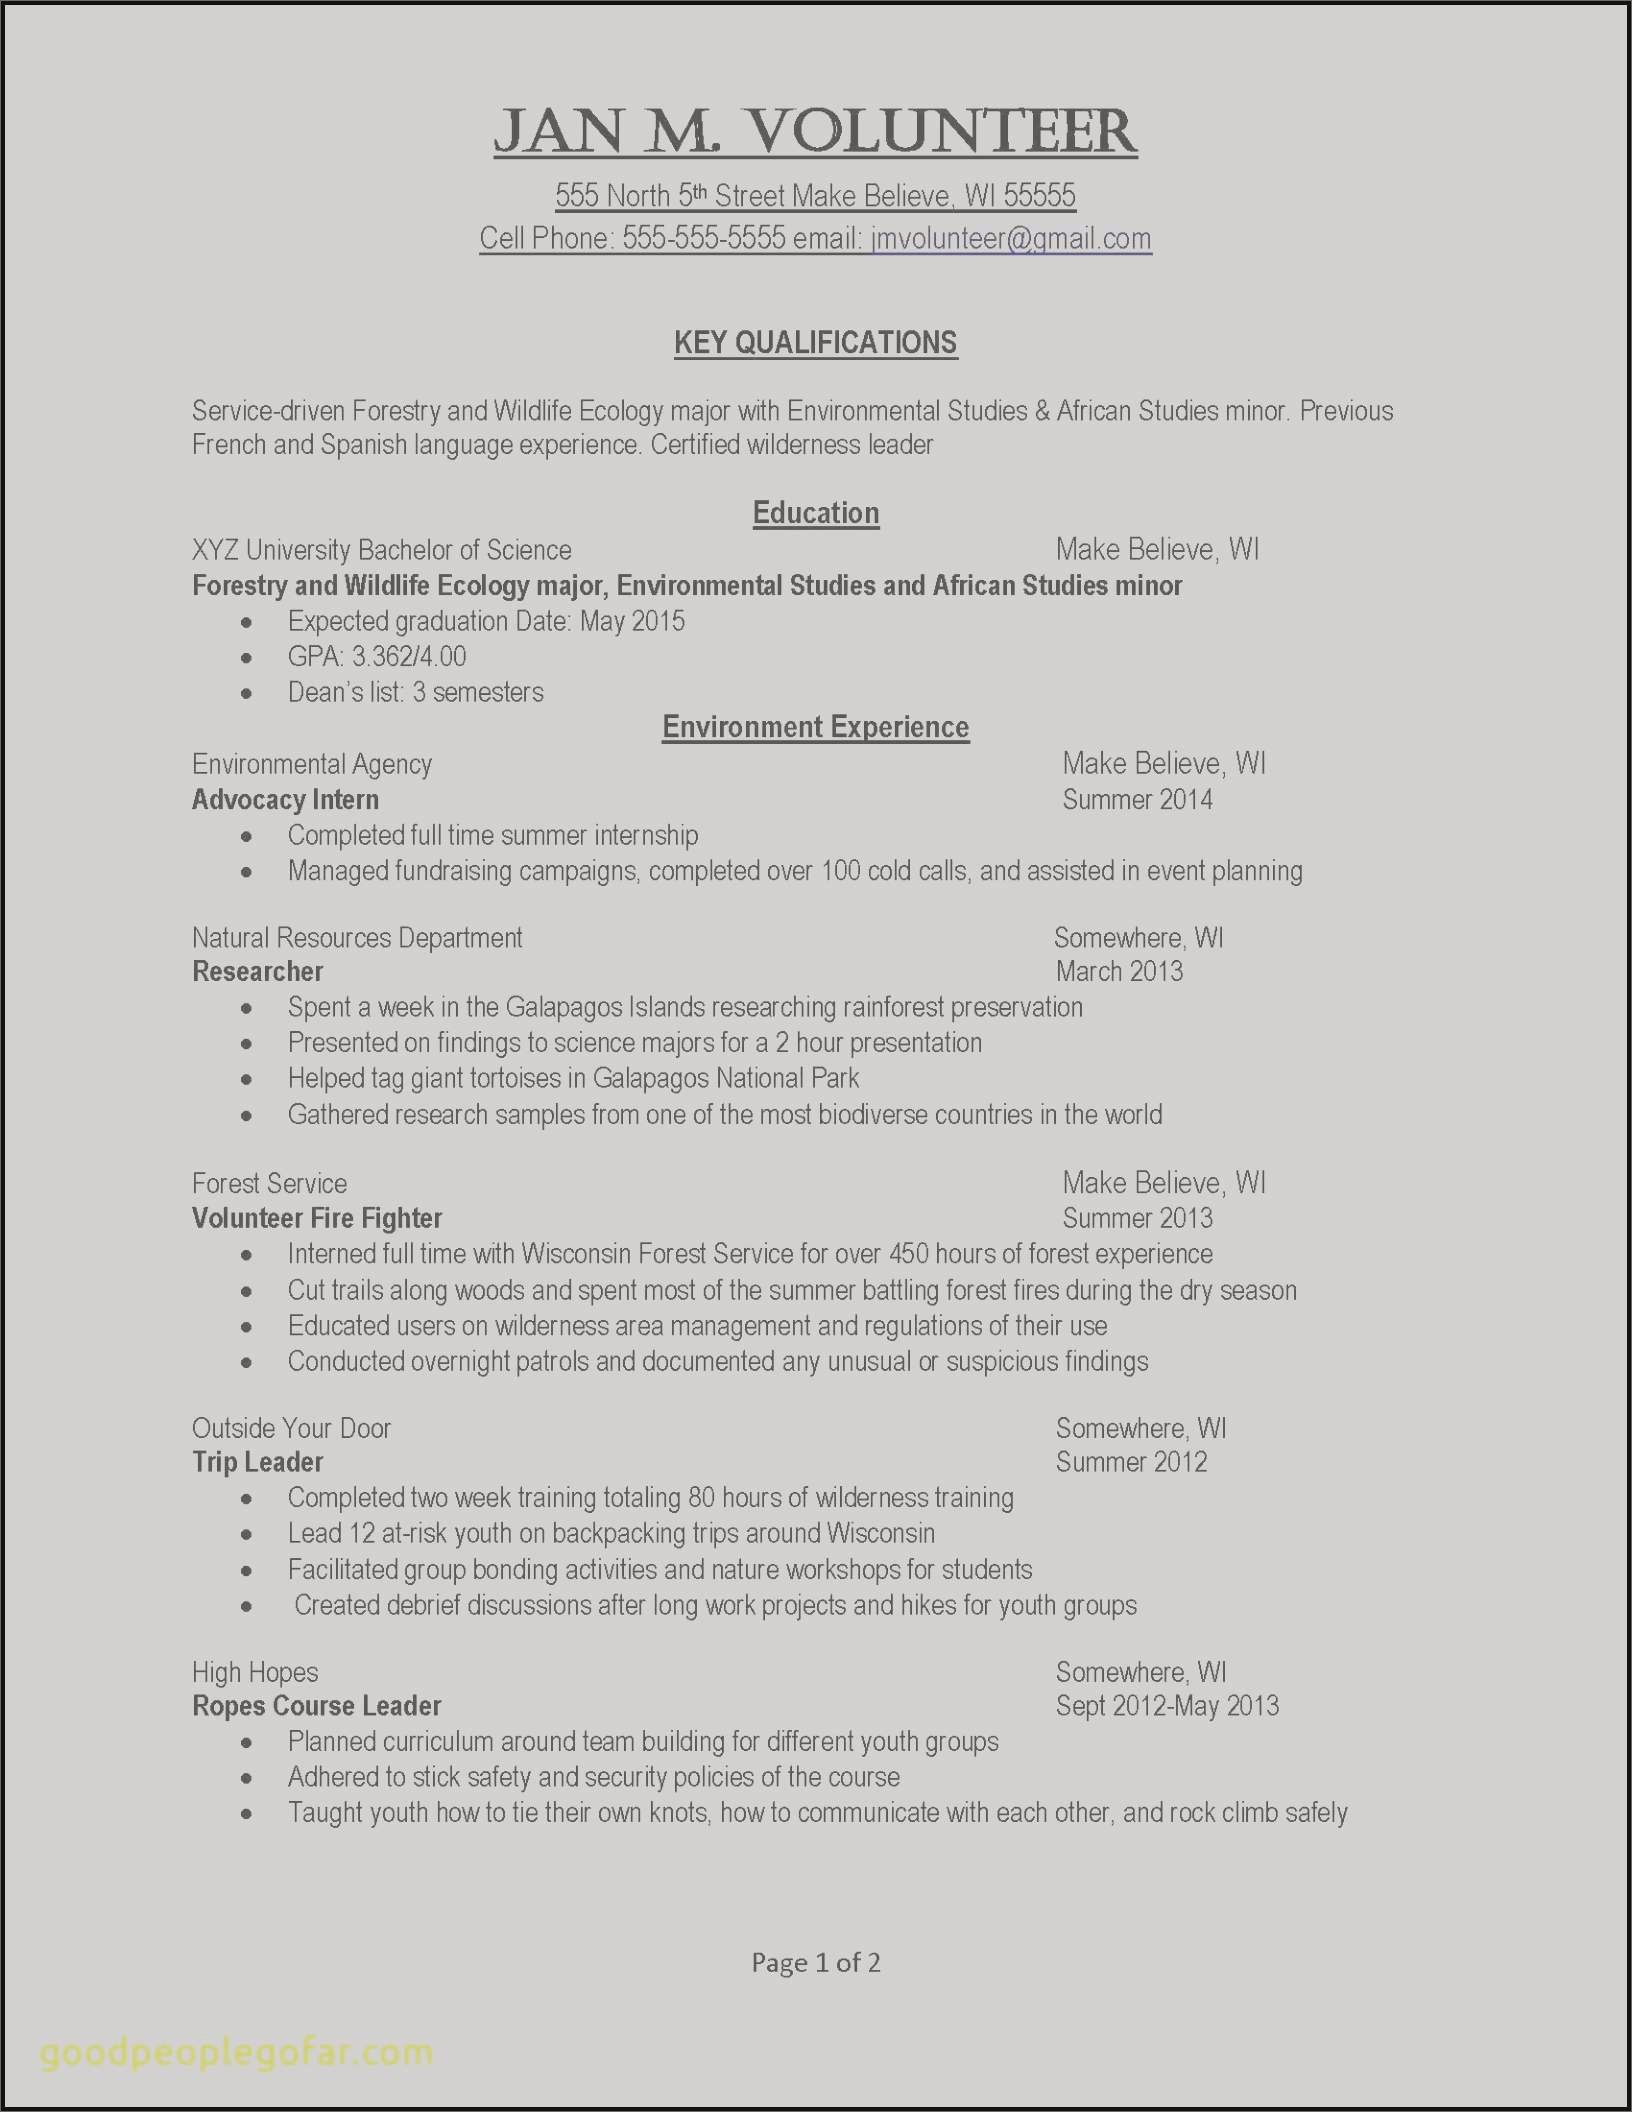 Resume Website Examples - Web Researcher New Example Job Resume Awesome Examples Resumes